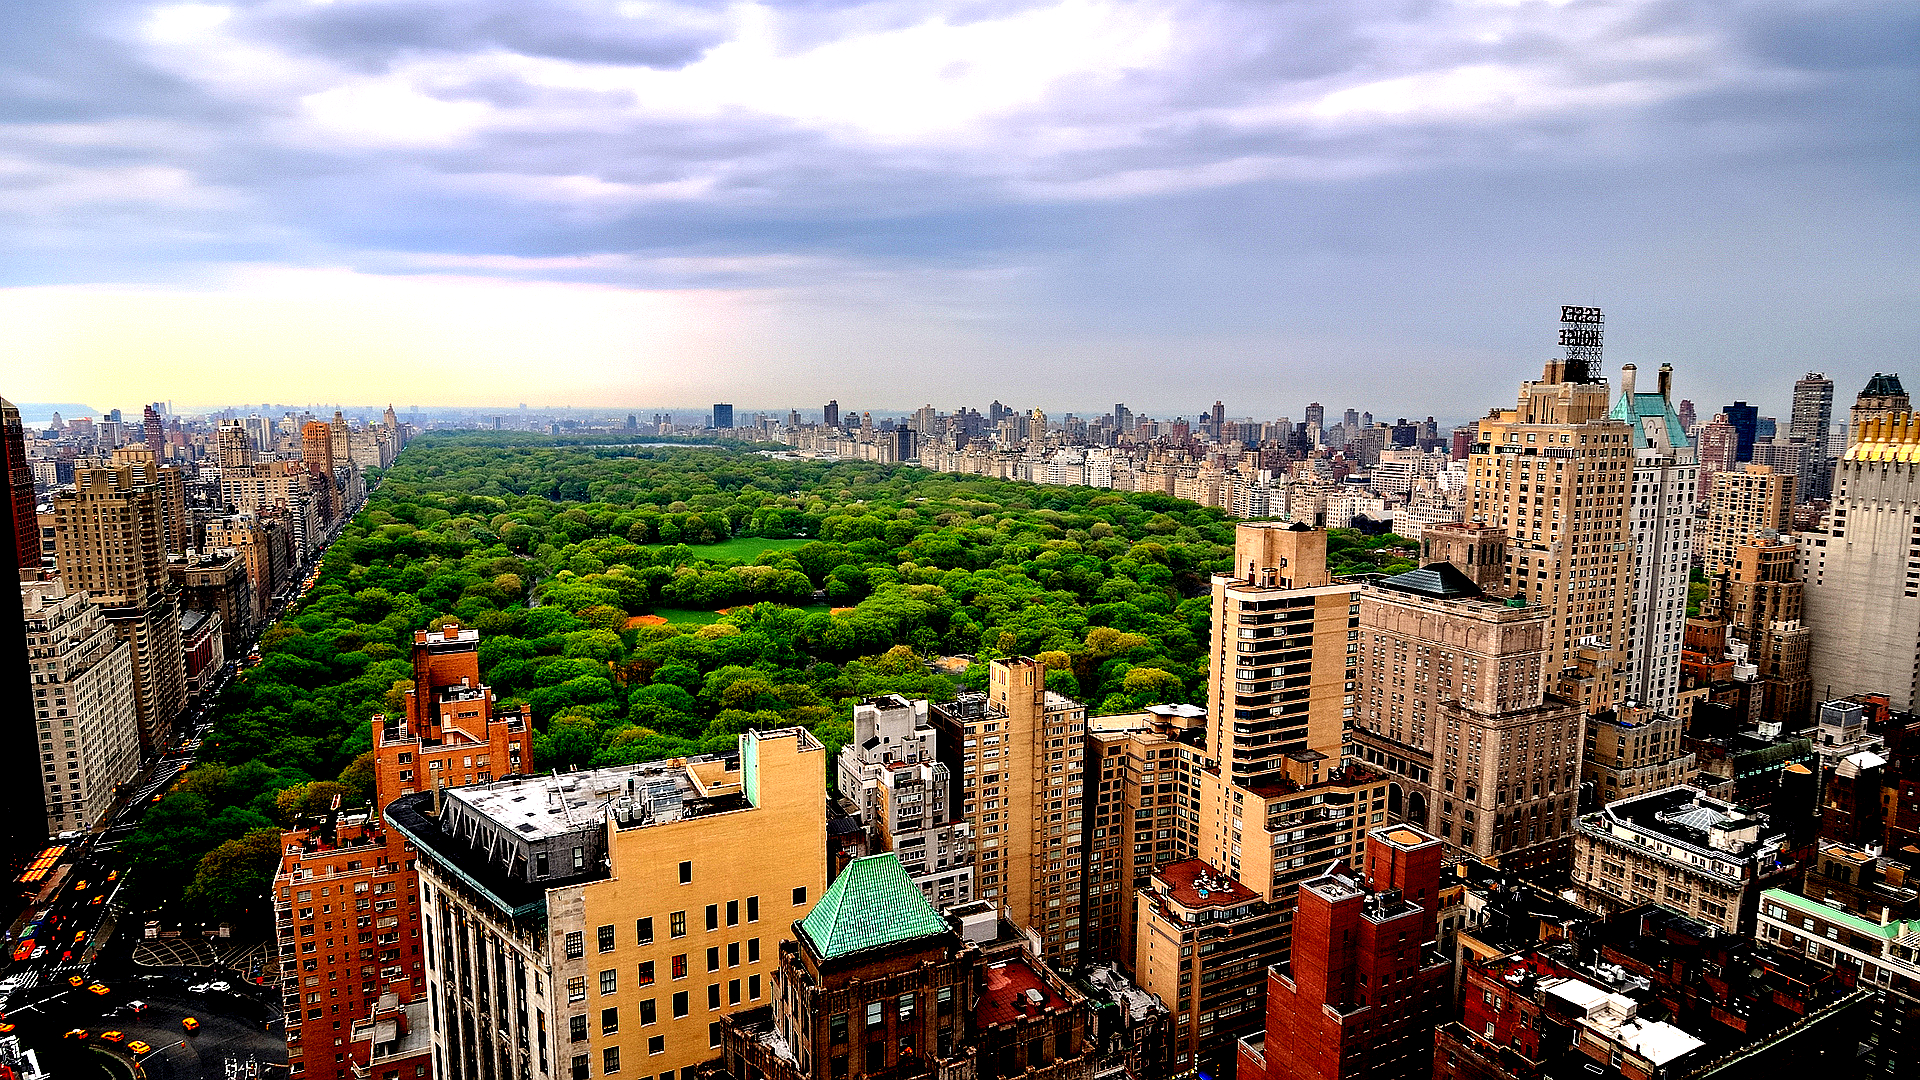 New York HD Wallpapers New York high quality and definition 1920x1080